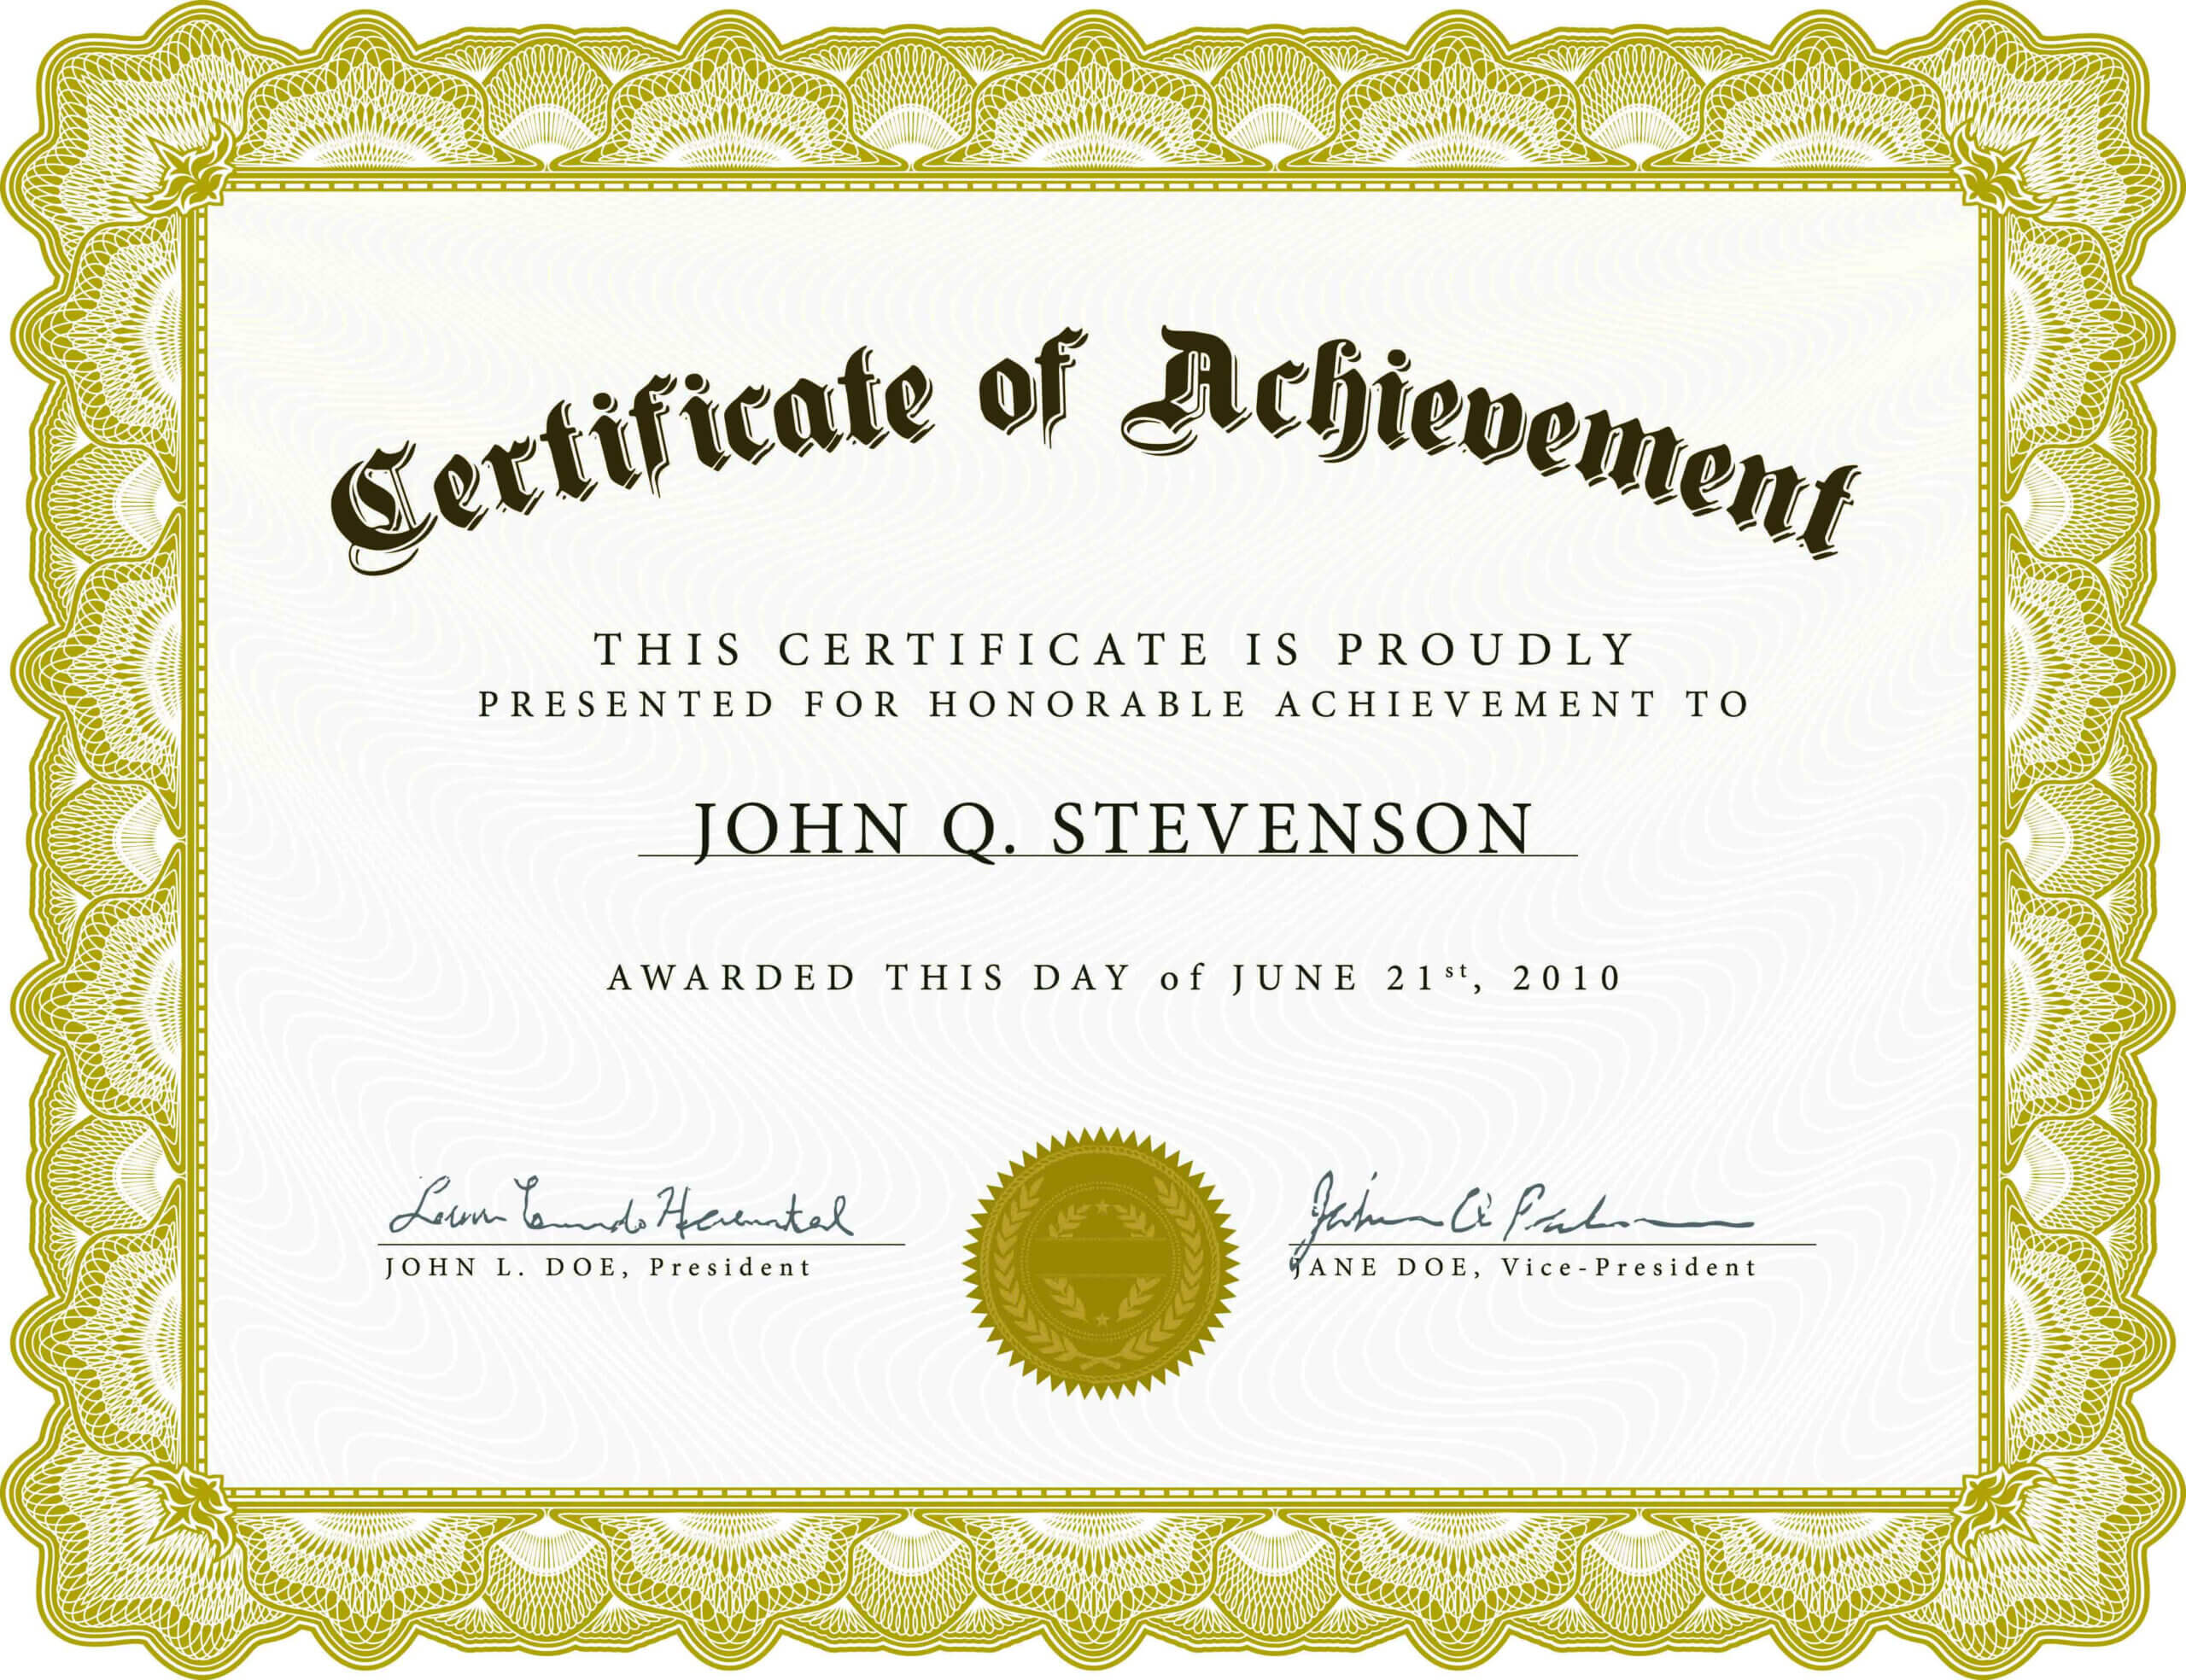 Free Certificate Border Templates For Word – Calep With Regard To Certificate Templates For Word Free Downloads